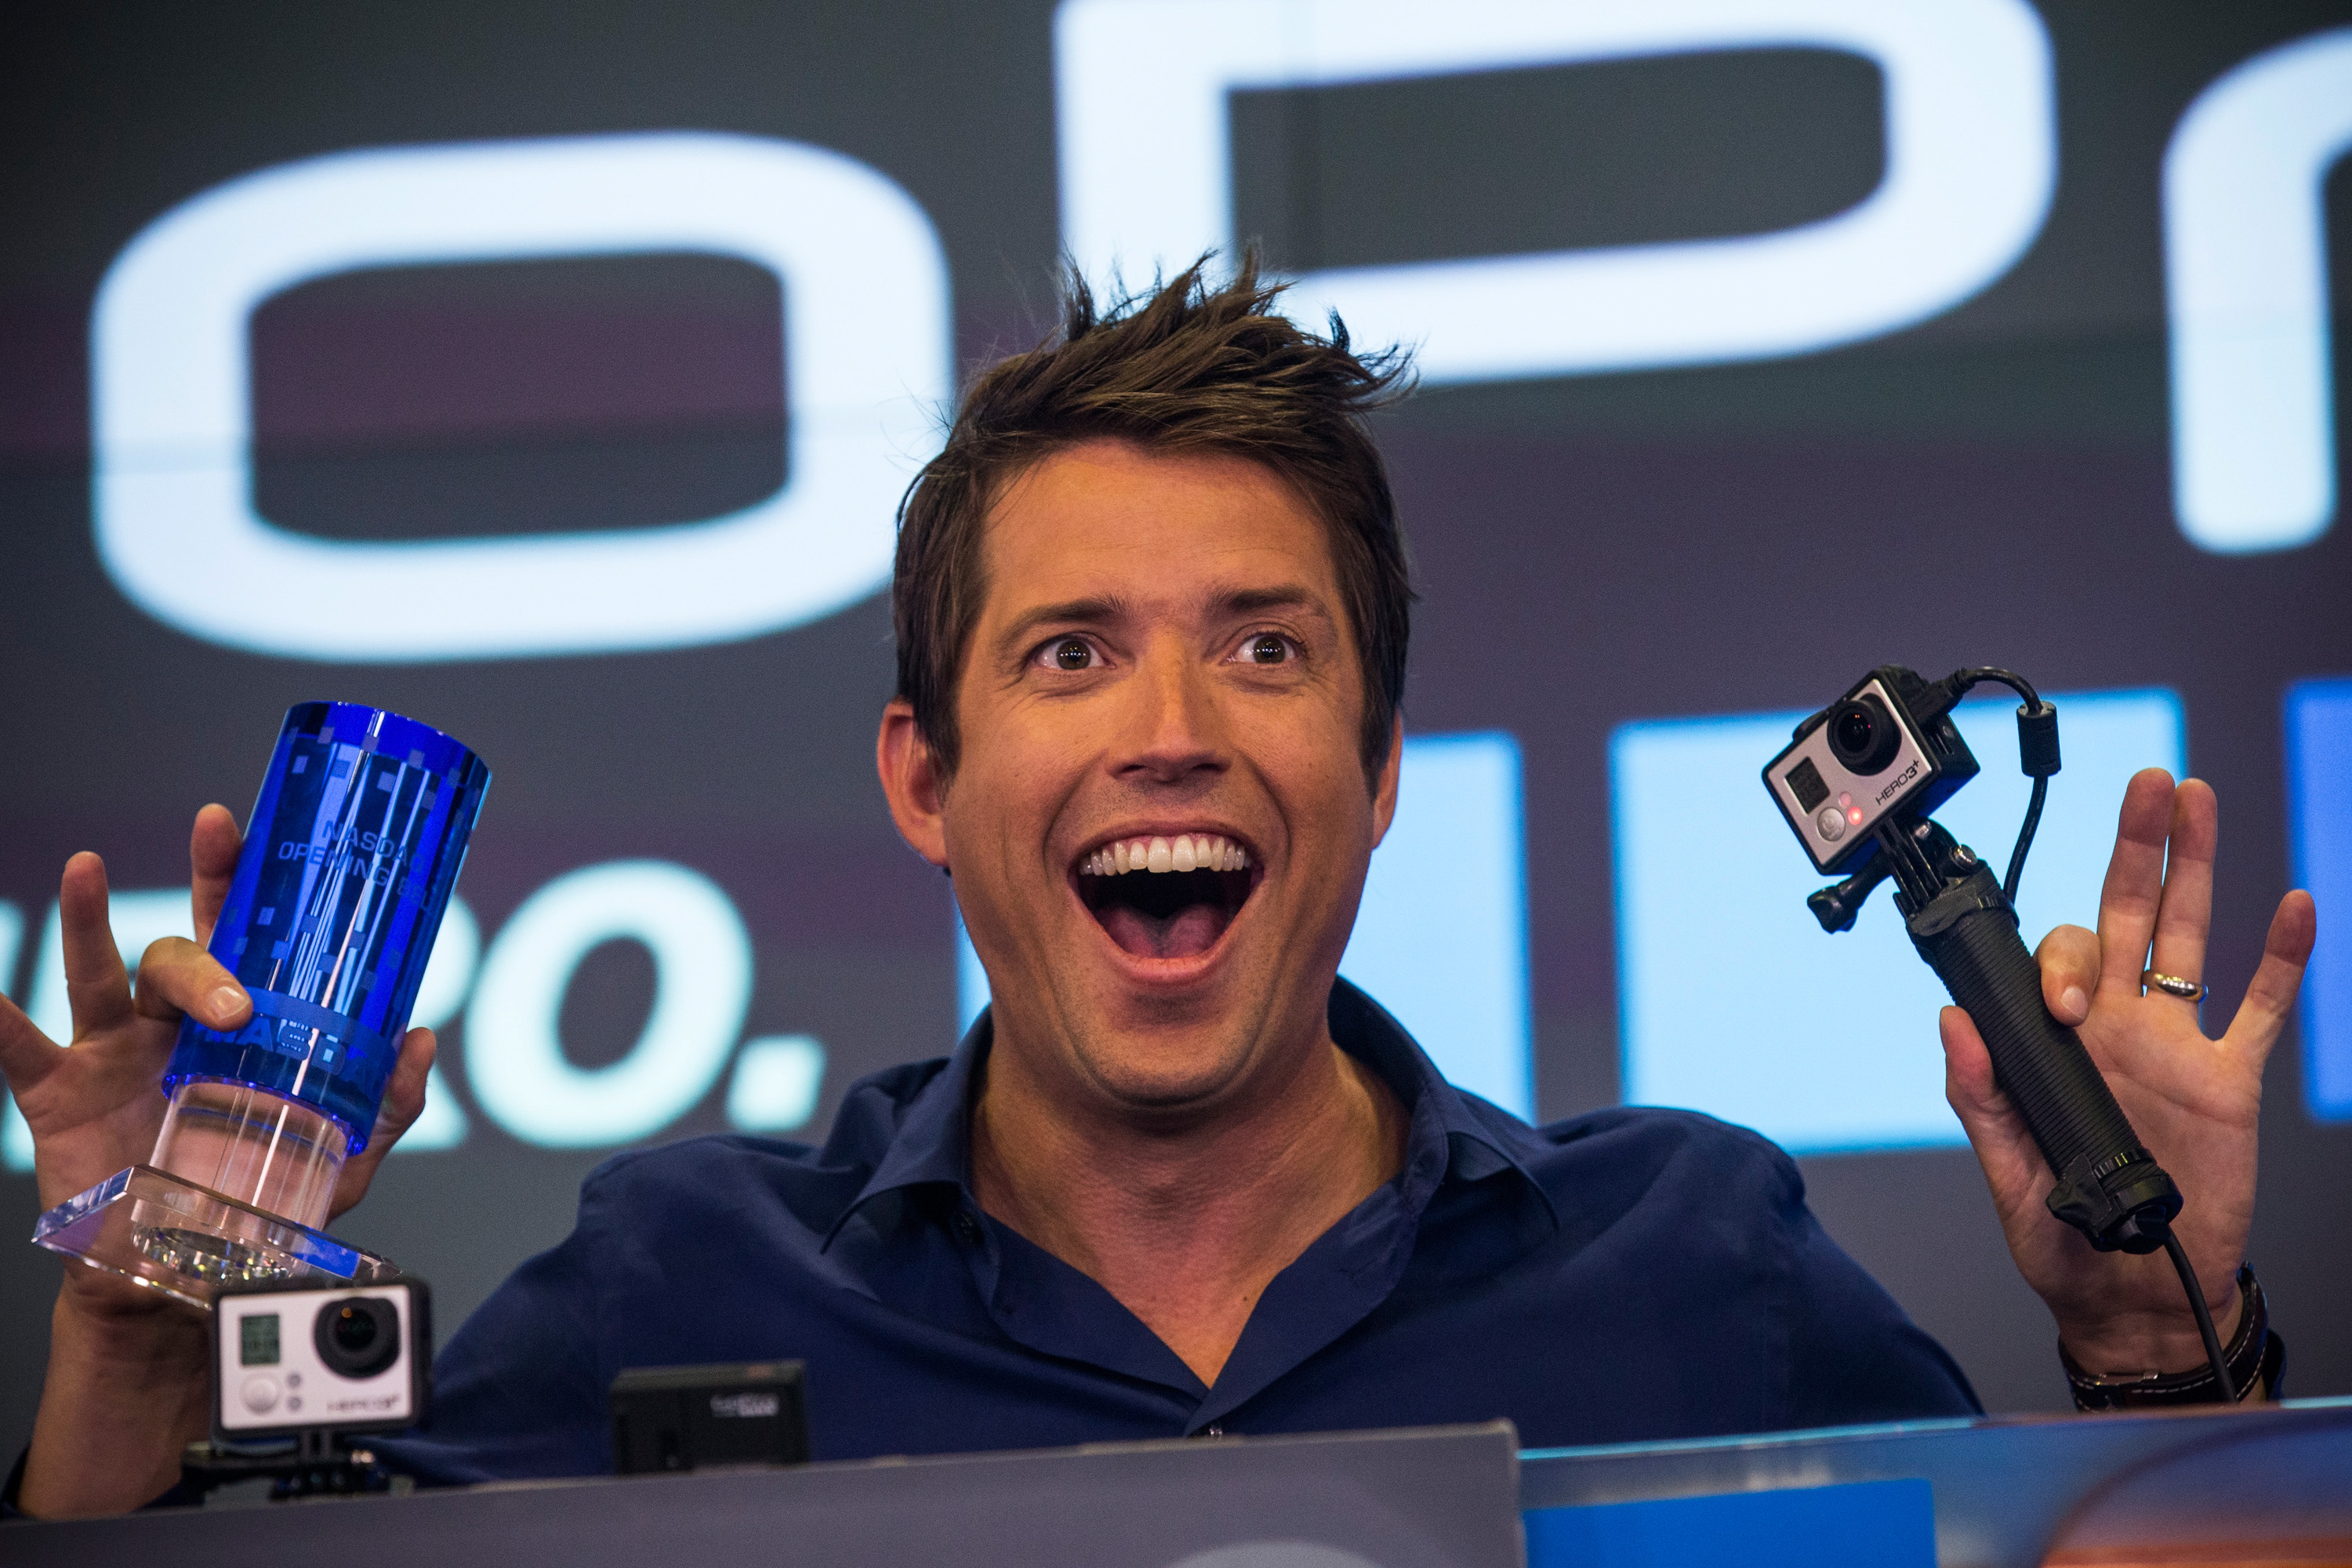 Nick Woodman, founder and CEO of GoPro speaks during the company's initial public offering (IPO) at the Nasdaq Stock Exchange on June 26, 2014 in New York City.